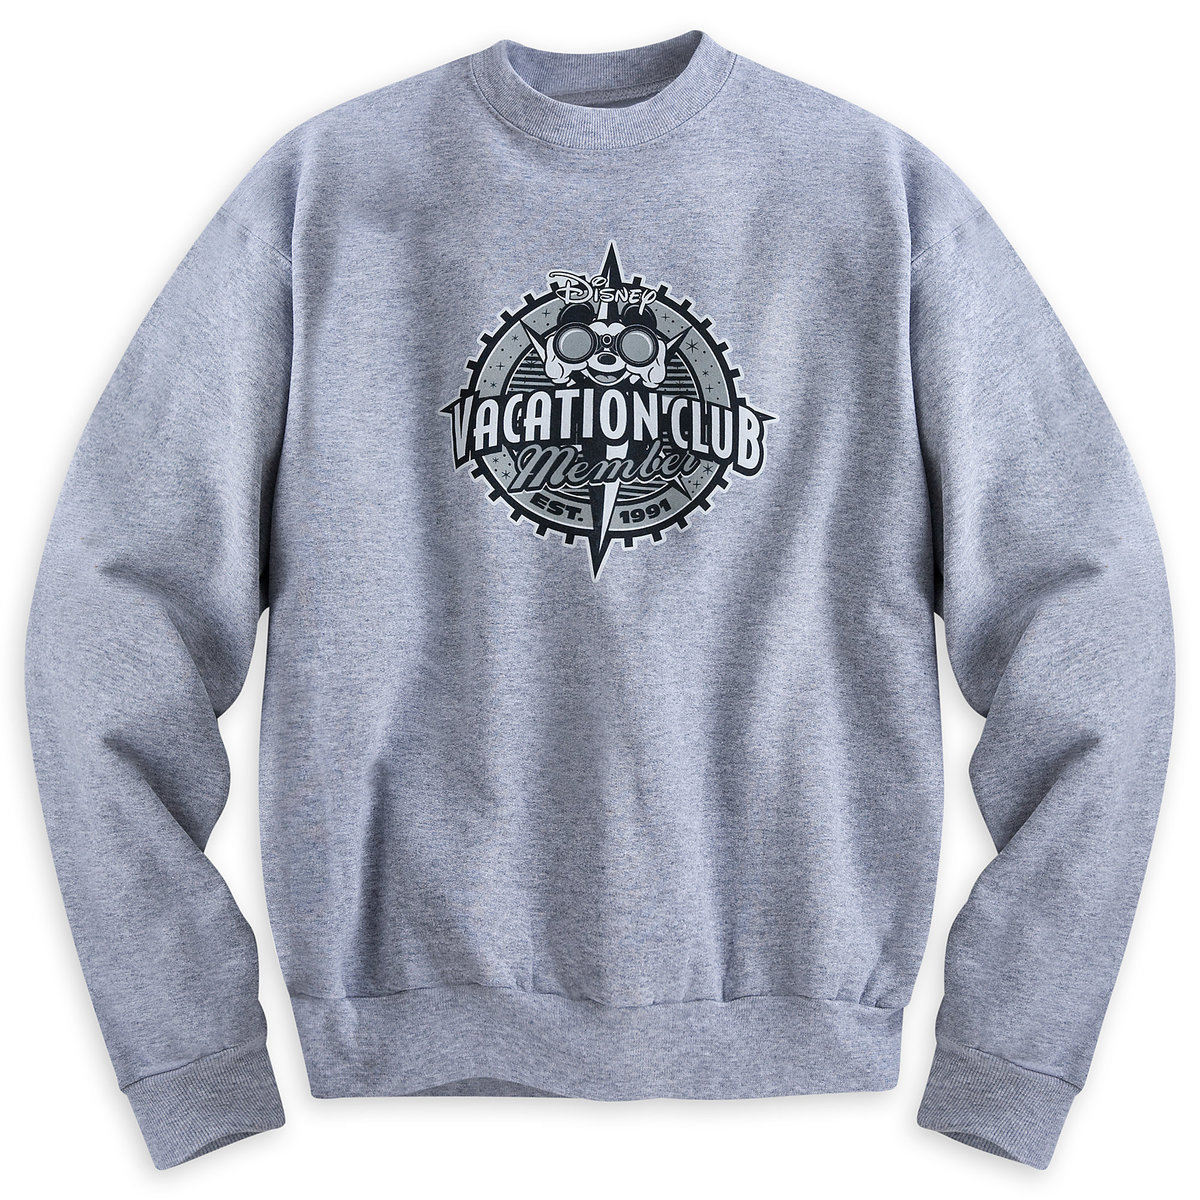 newest bf3c4 cd25a Product Image of Mickey Mouse Disney Vacation Club Sweatshirt for Adults   1